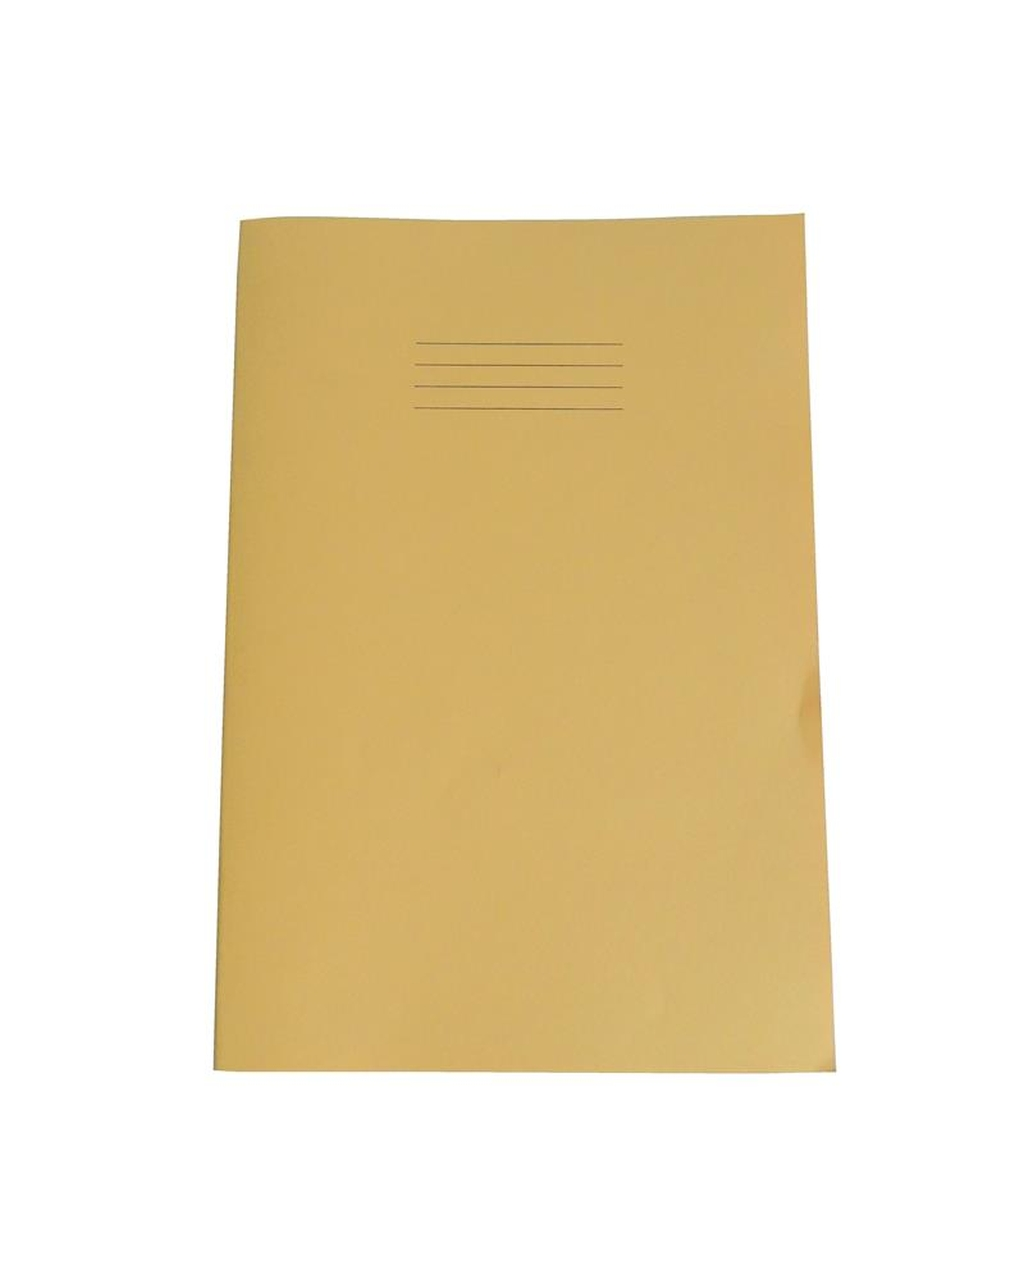 Exercise Book A4+ (330 x 250mm) Yellow Cover12mm Ruled 80 Pages